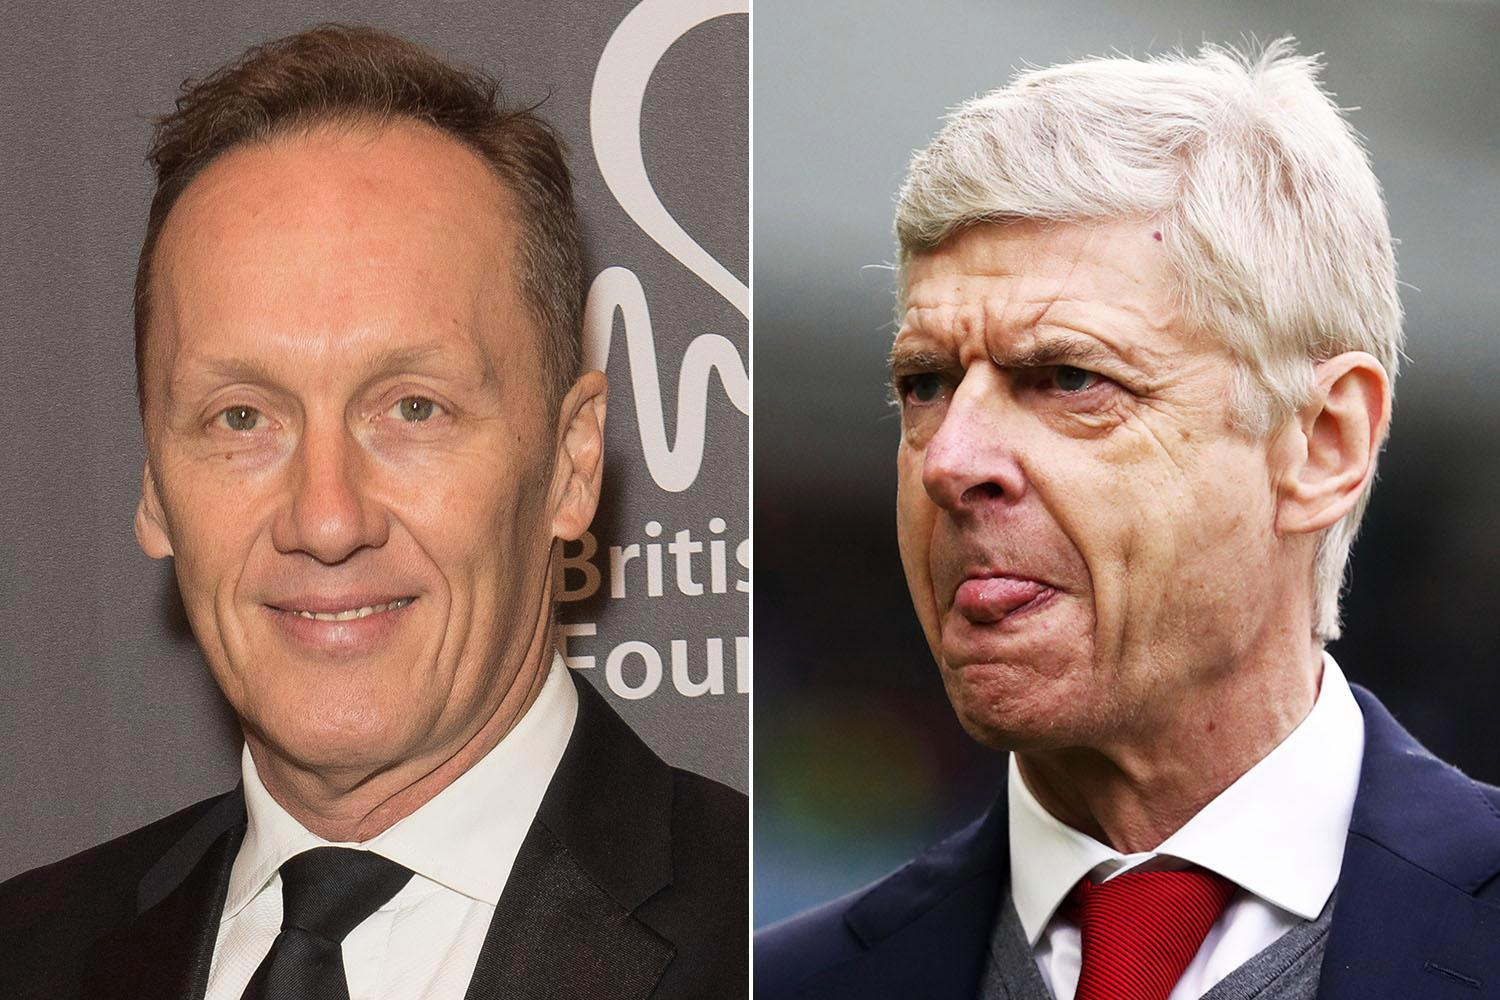 Arsenal legend Lee Dixon launches astonishing attack on Arsene Wenger and says Tony Adams turned Ashley Cole into world's best left-back